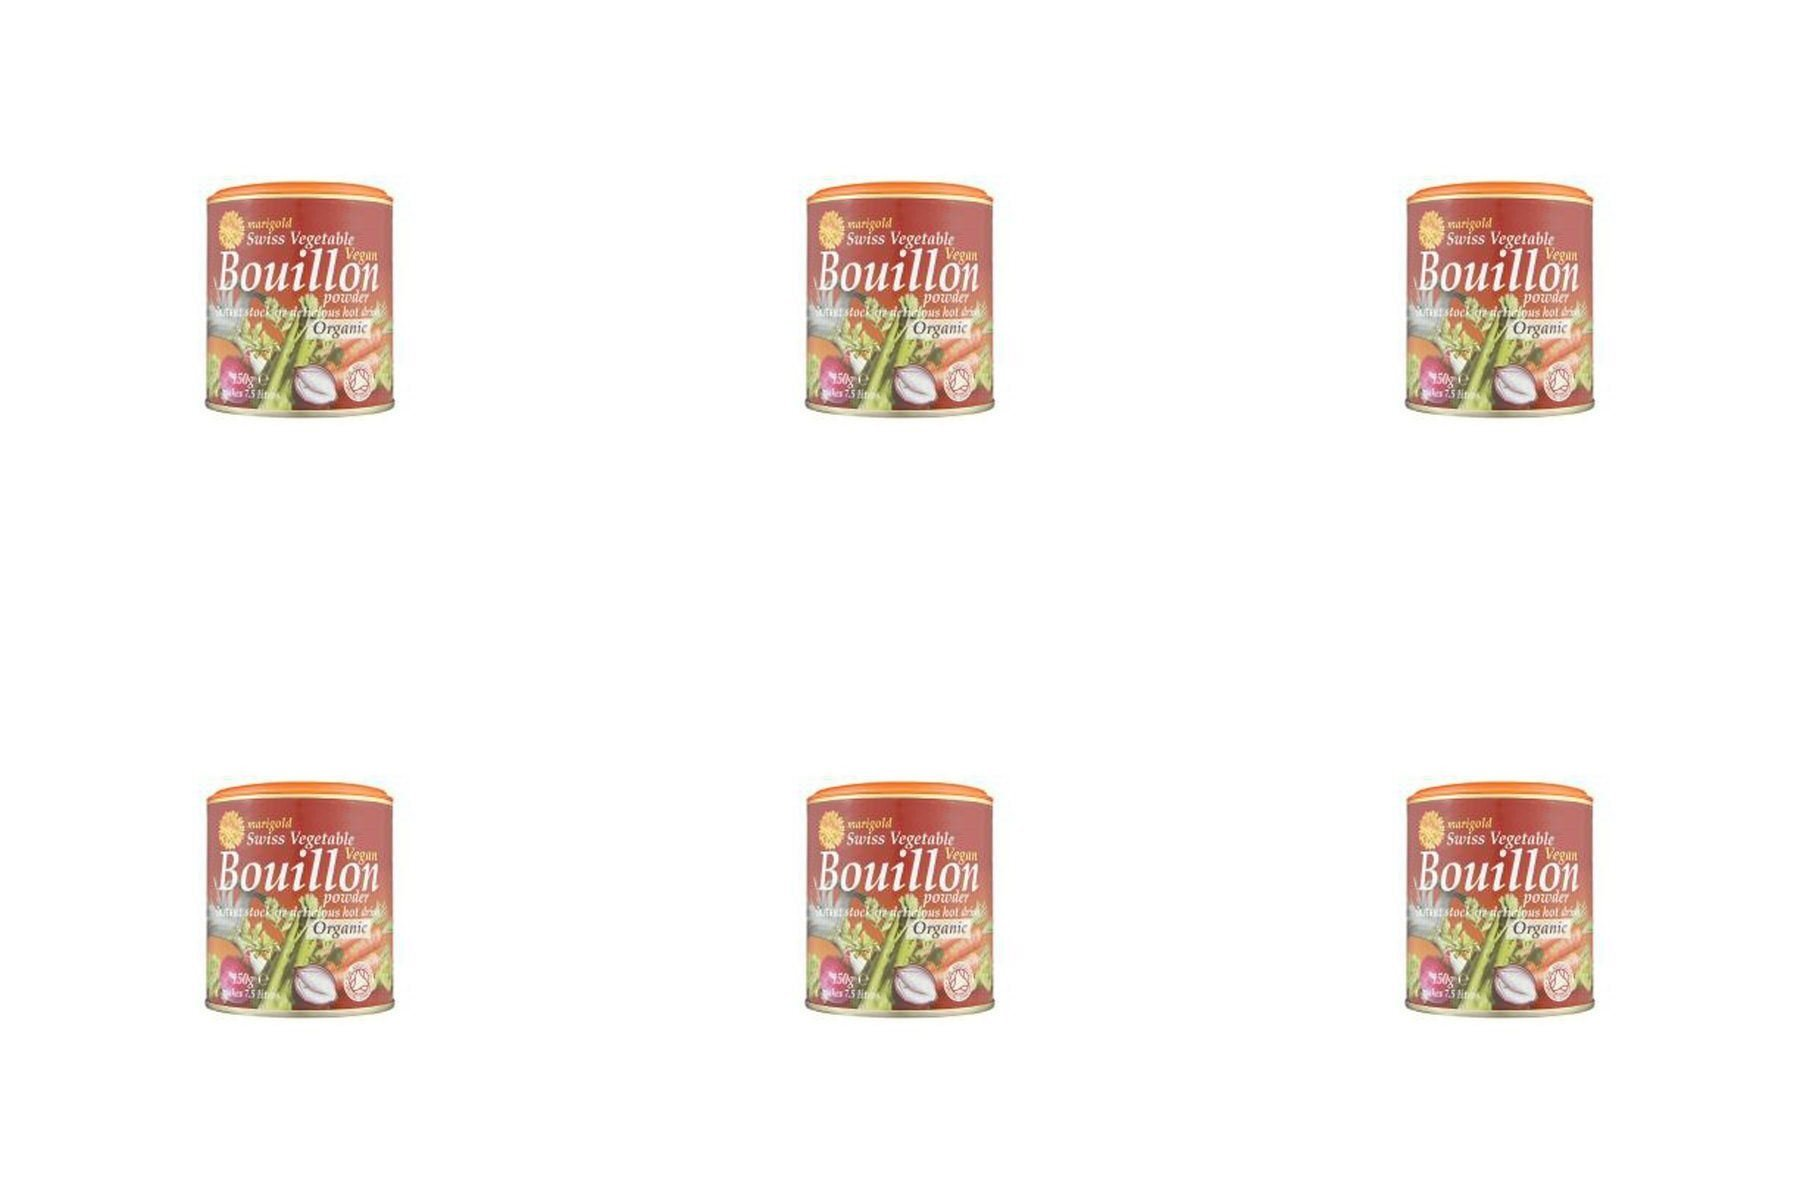 (6 PACK) - Marigold Swiss Vegetable Bouillon - Organic & Vegan| 150 g |6 PACK - SUPER SAVER - SAVE MONEY